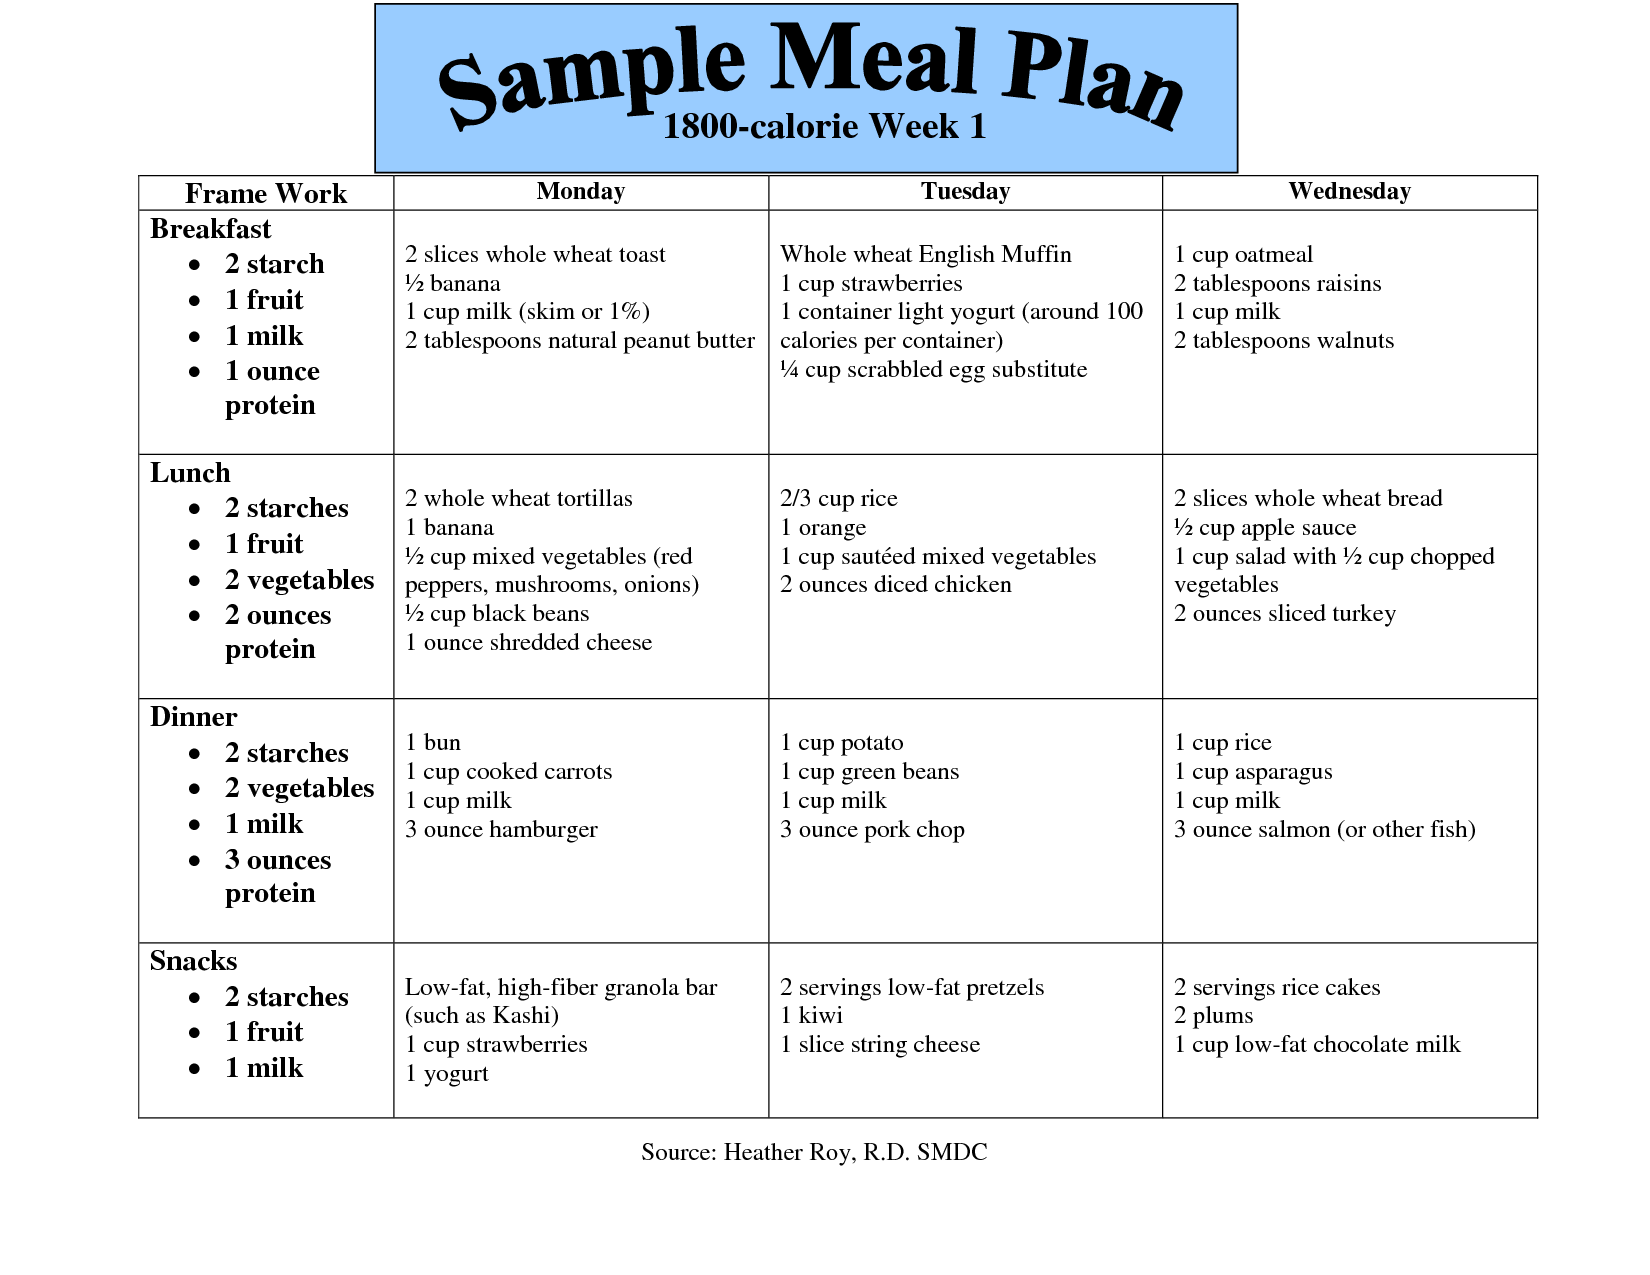 An 1800 calorie diet plan calls for three meals and three snacks each day  to provide your body with sustained energy.